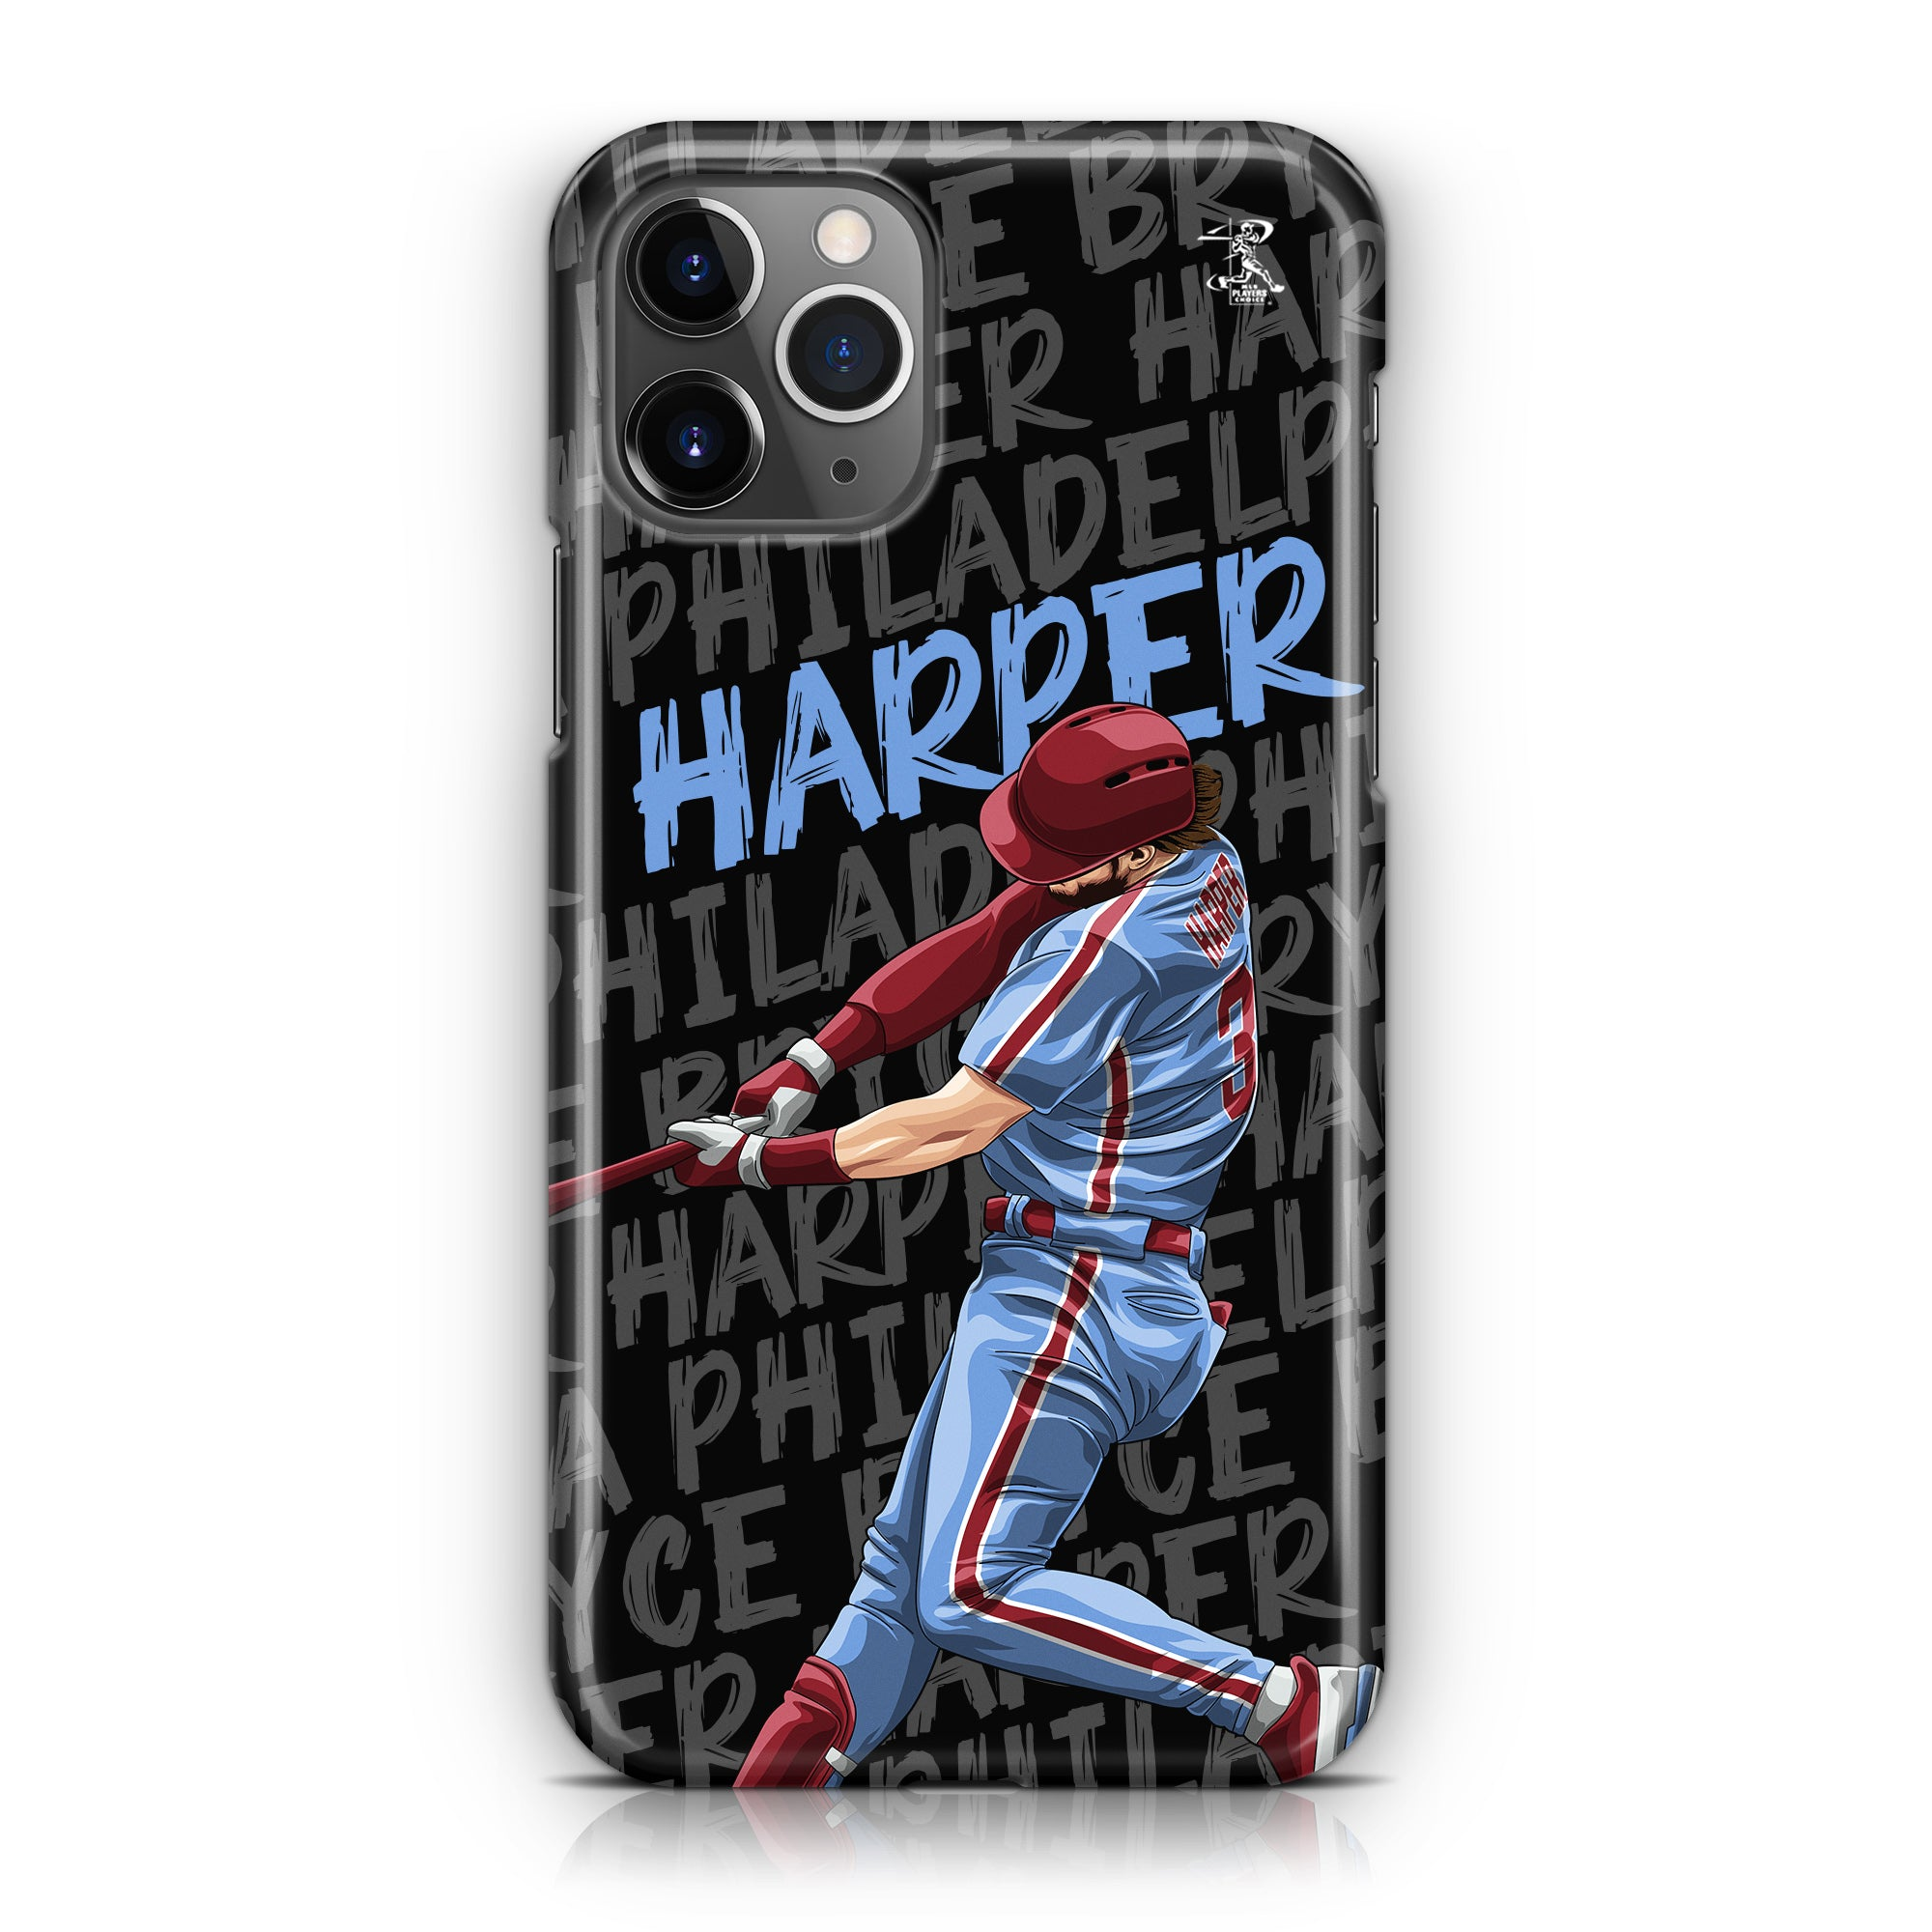 Harper Swing Star Series 2.0 Case